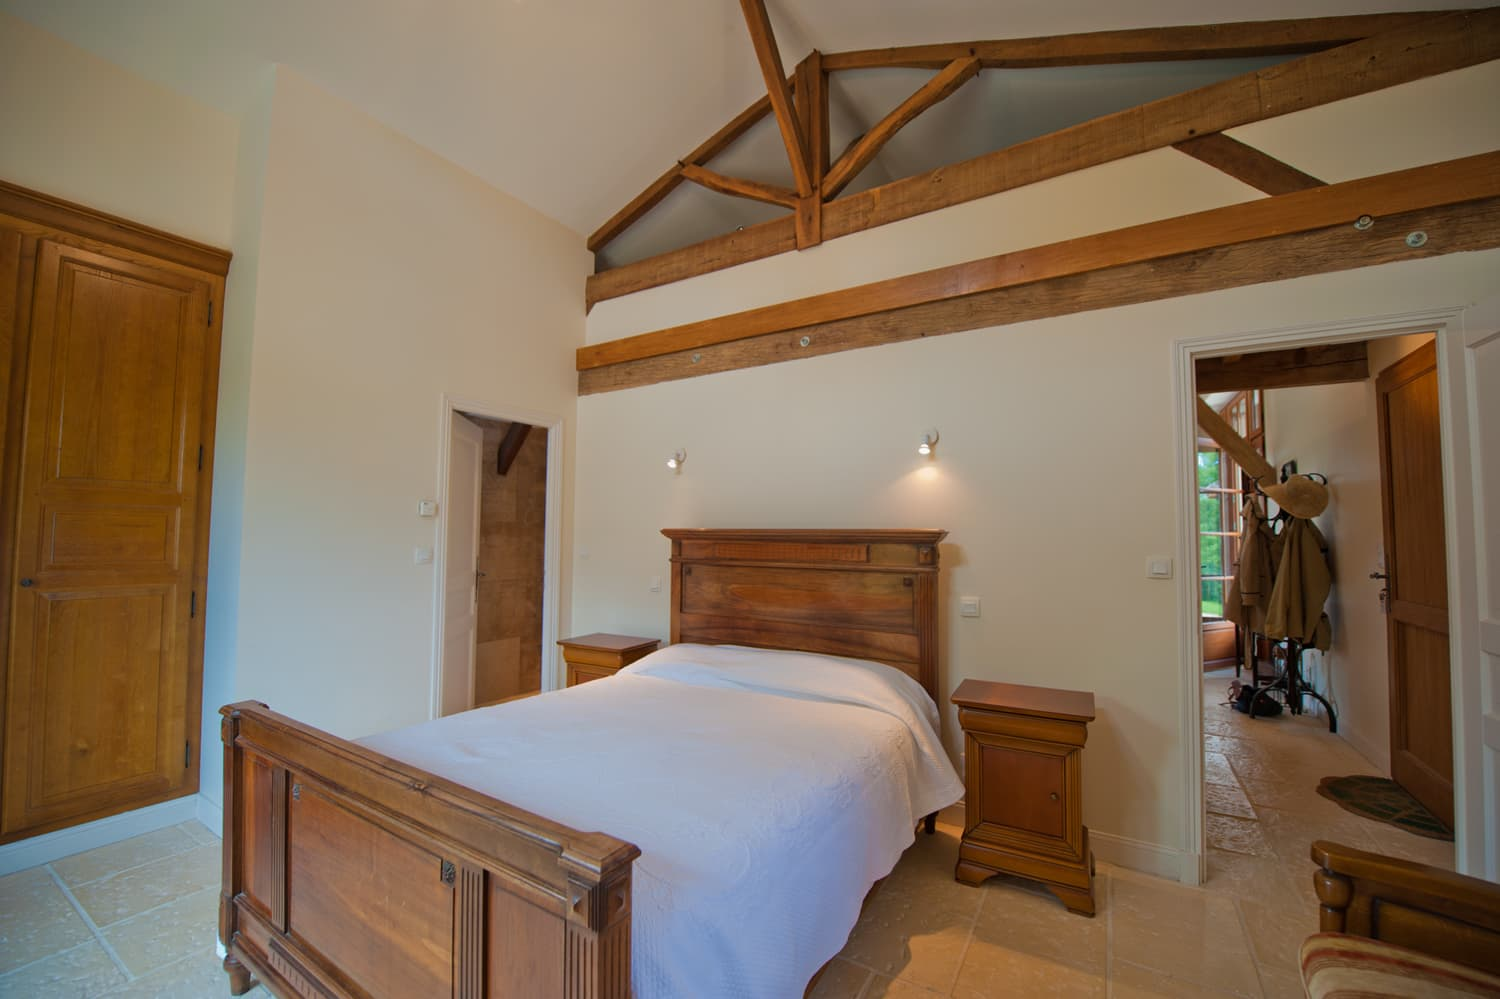 Bedroom in Dordogne holiday villa